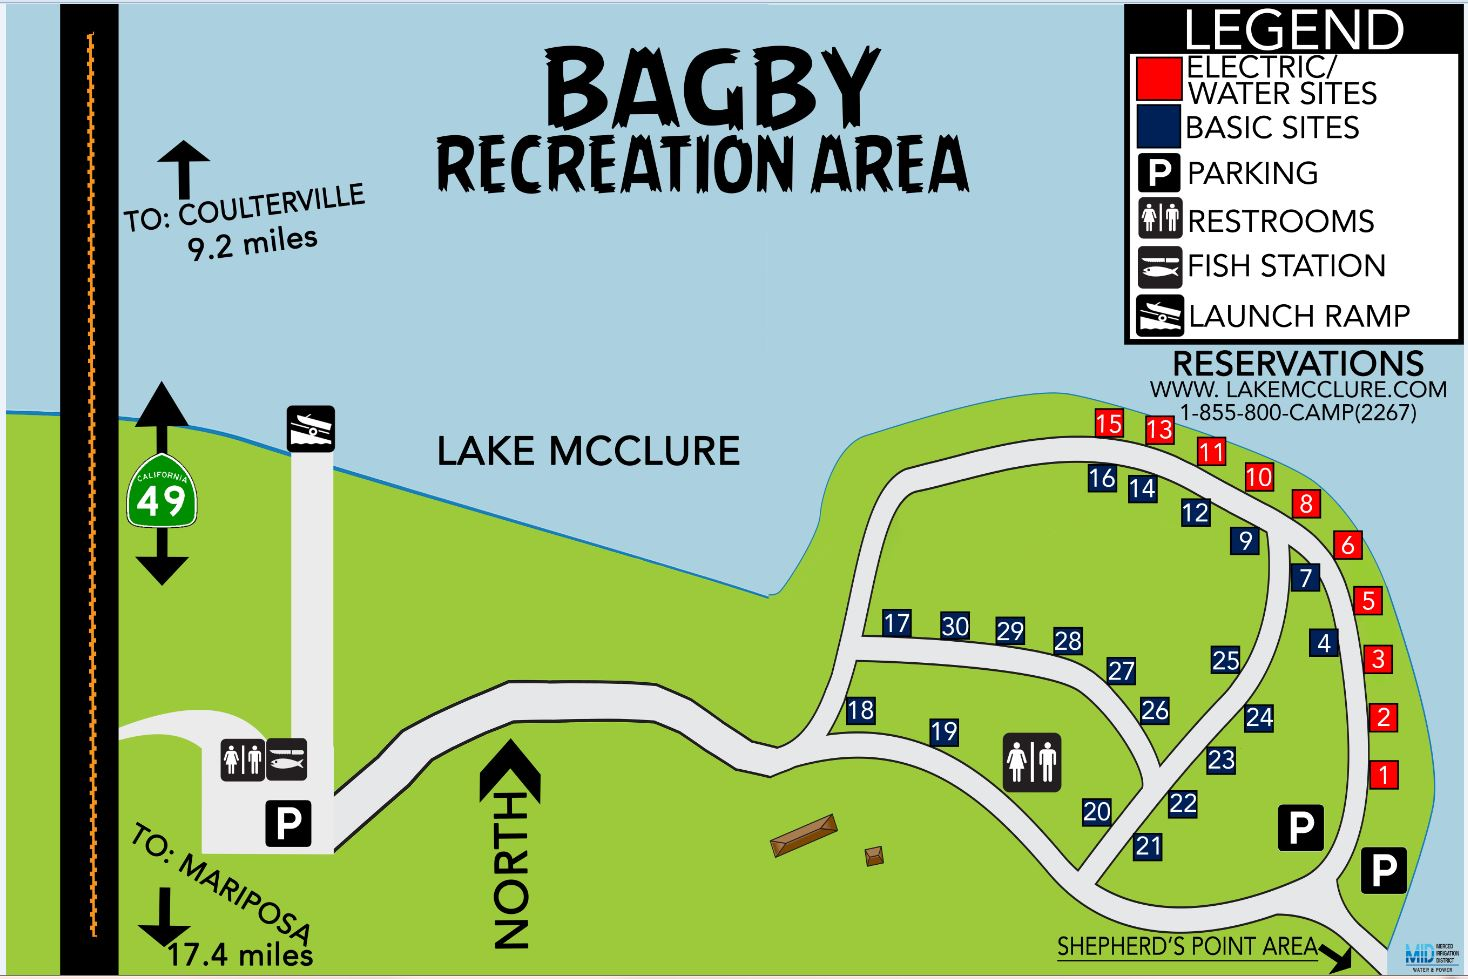 Bagby Camping & Recreation Map